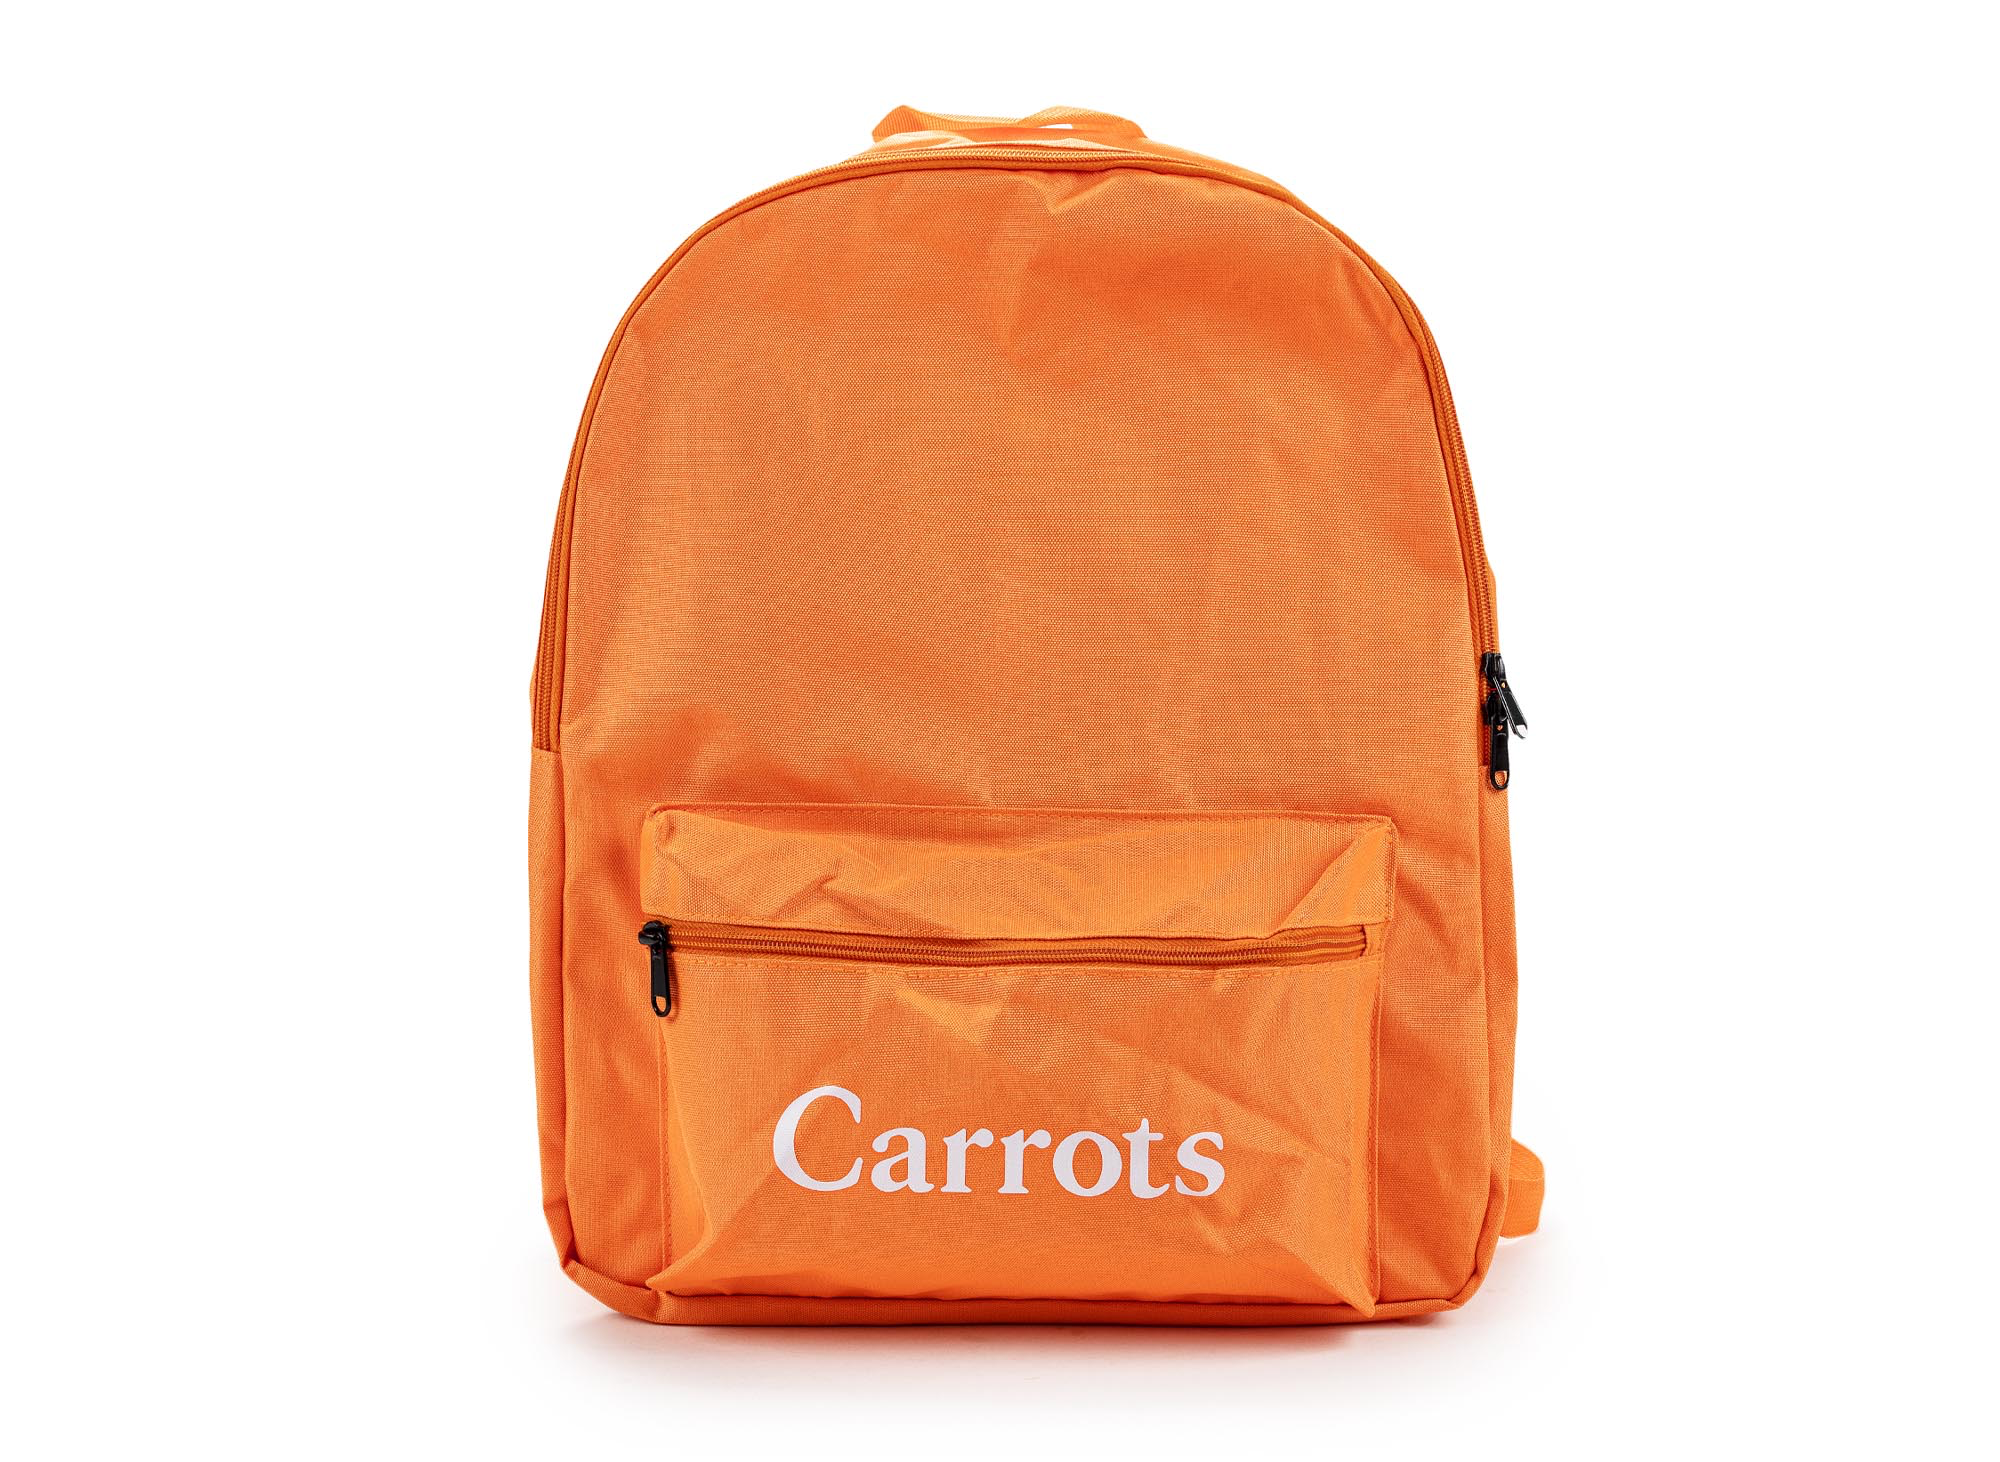 Carrots Wordmark Backpack